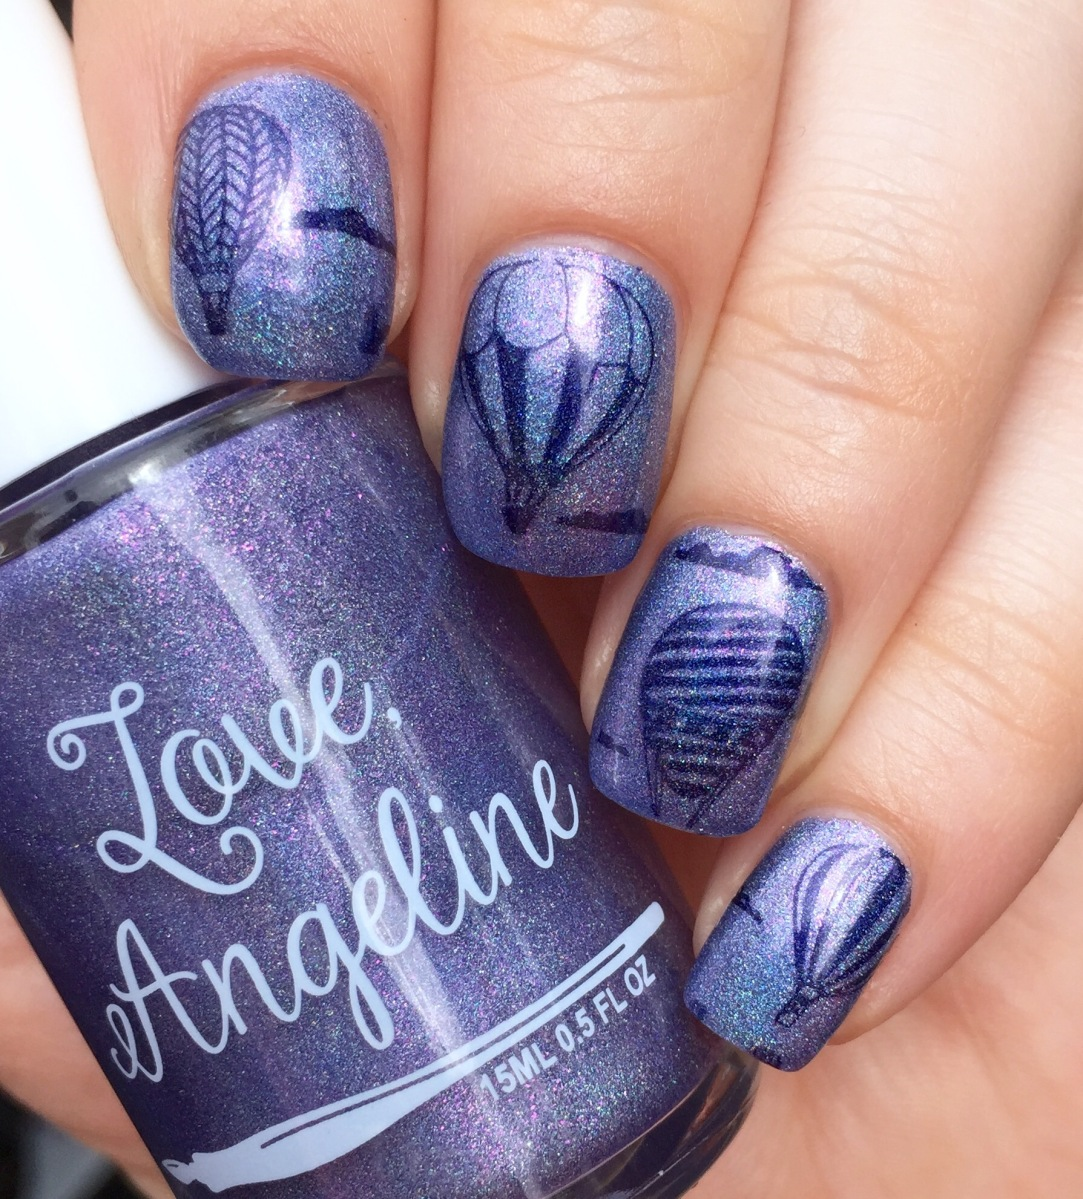 Hot Air Balloon Stamping with Love, Angeline and Colors by Llarowe